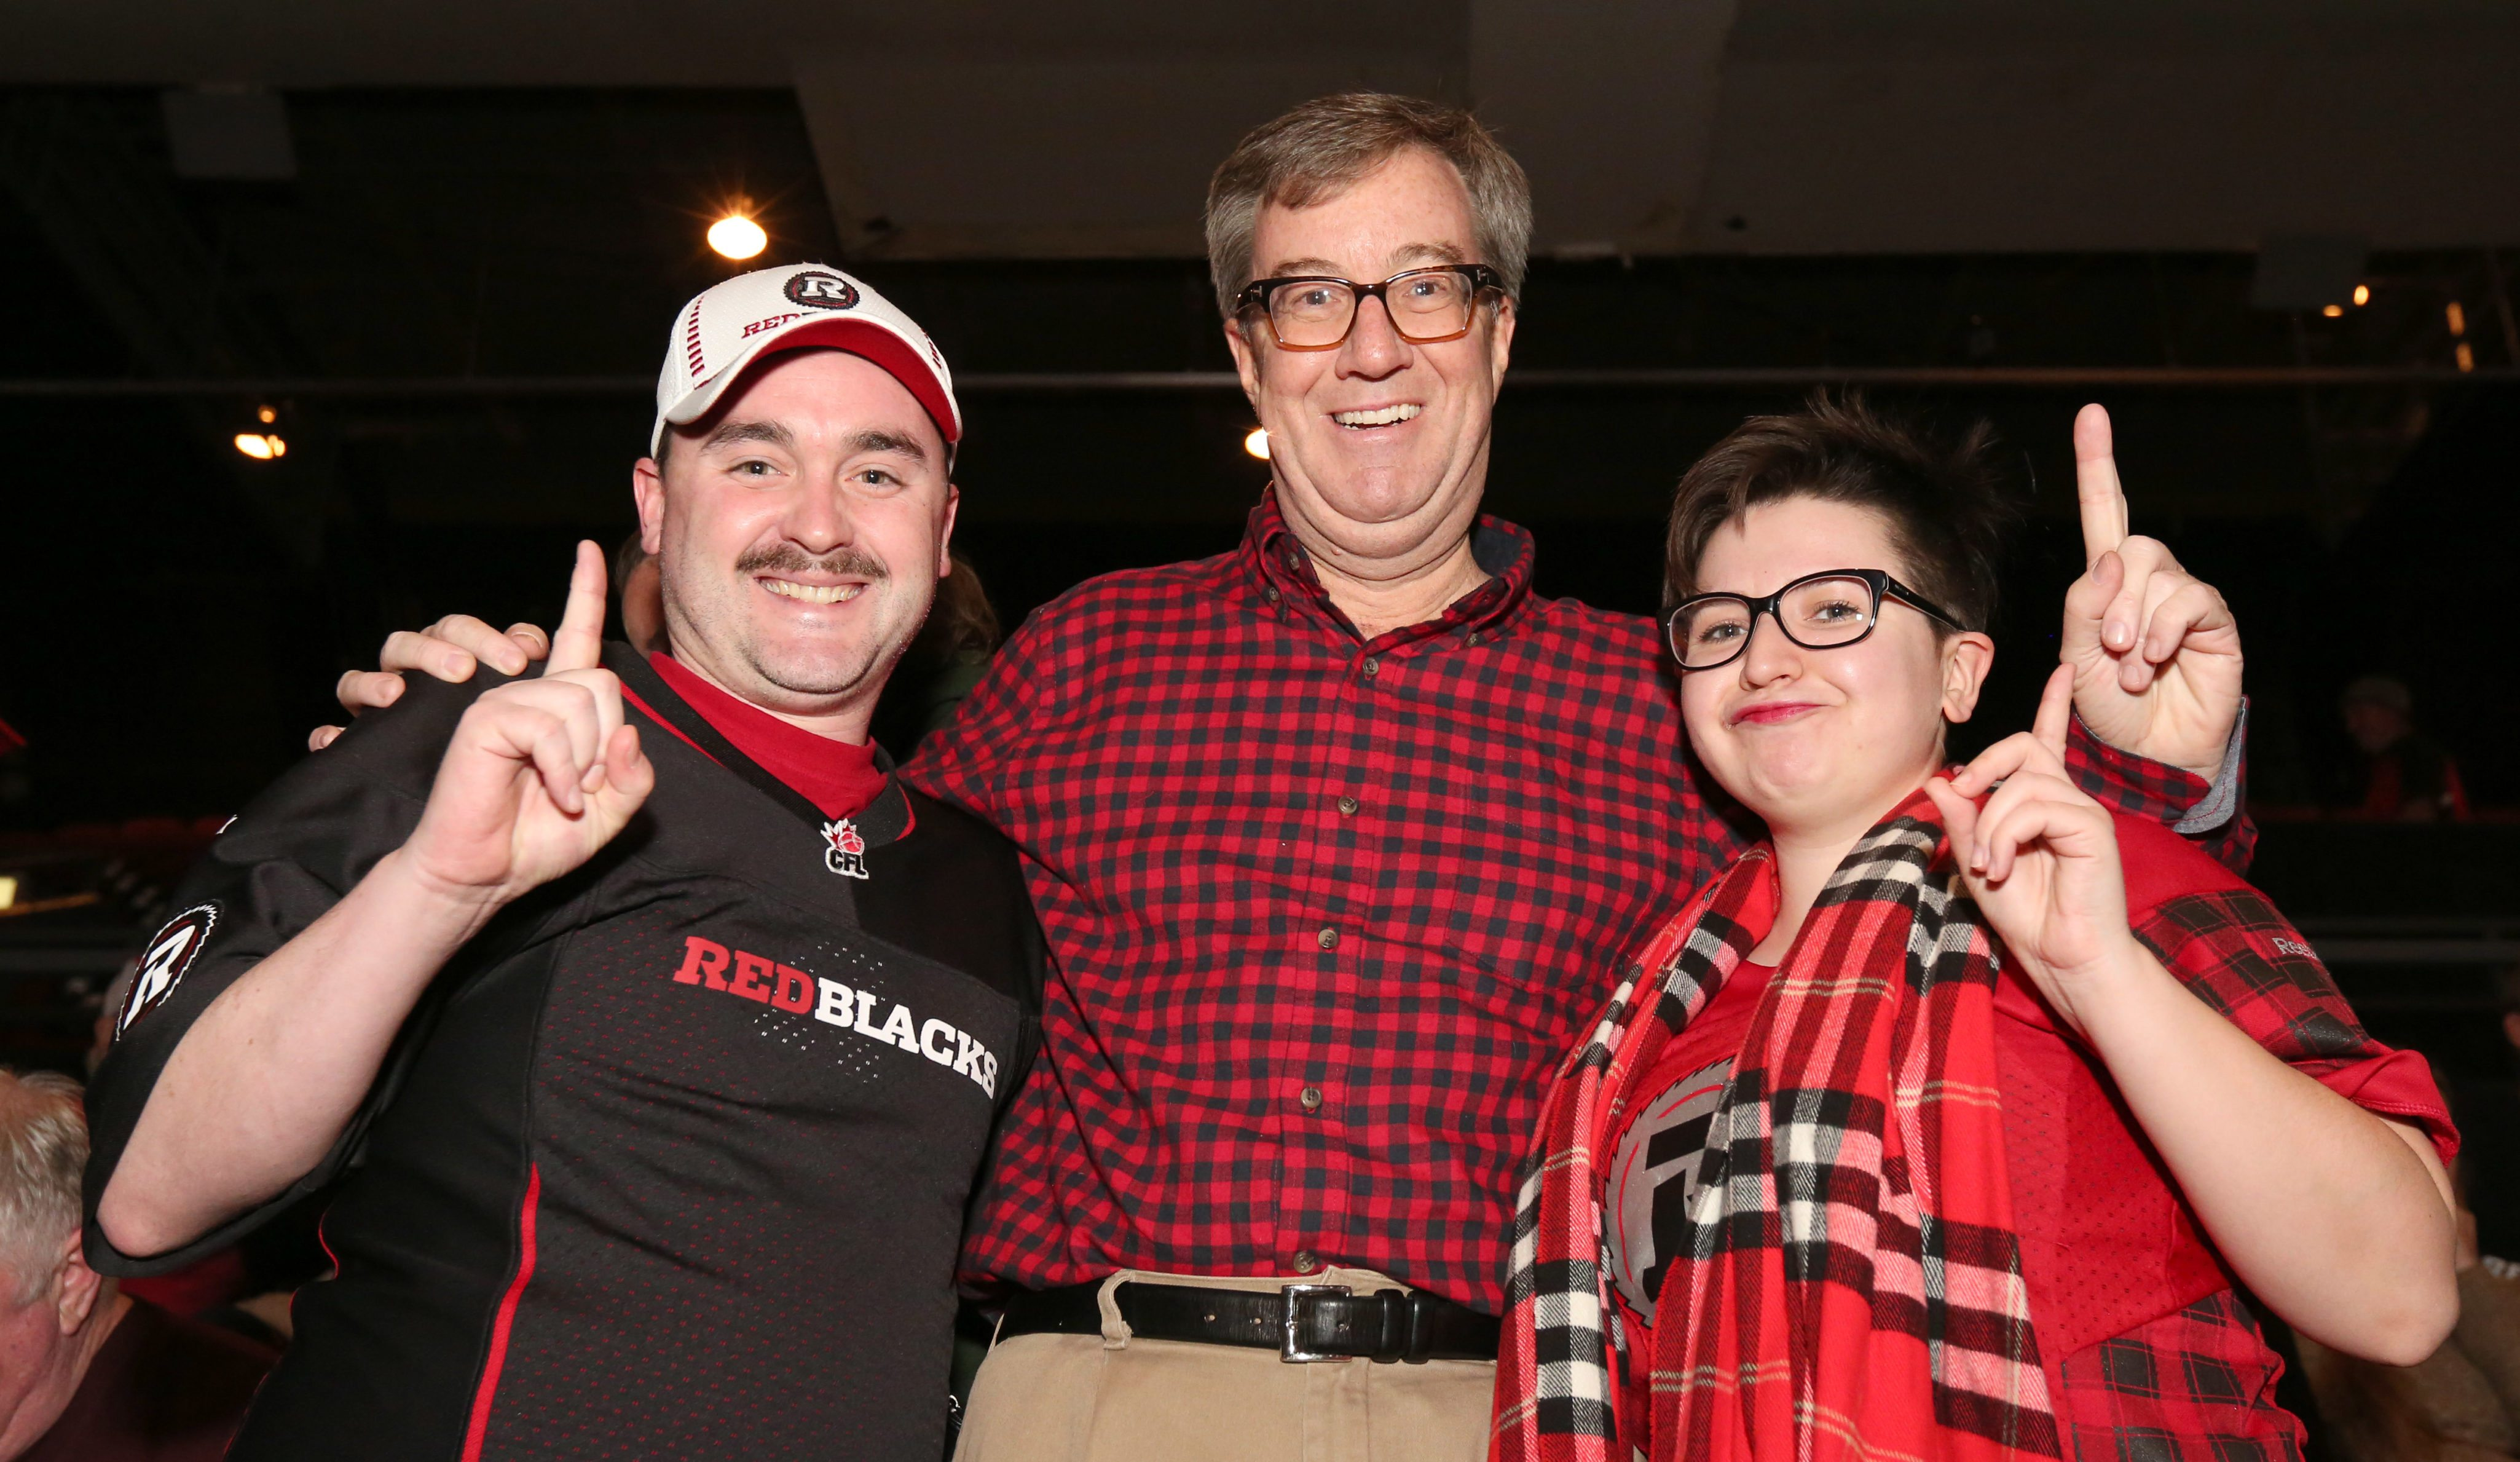 Walter Logue, left, Ottawa Mayor Jim Watson, centre, and Rosemary CotŽ, right, cheer prior to the start of the 103rd Grey Cup game between the Edmonton Eskimos and the Ottawa Redblacks at a viewing party at The Arena at TD Place. Photo by Jana Chytilova, OTTAWA magazine.